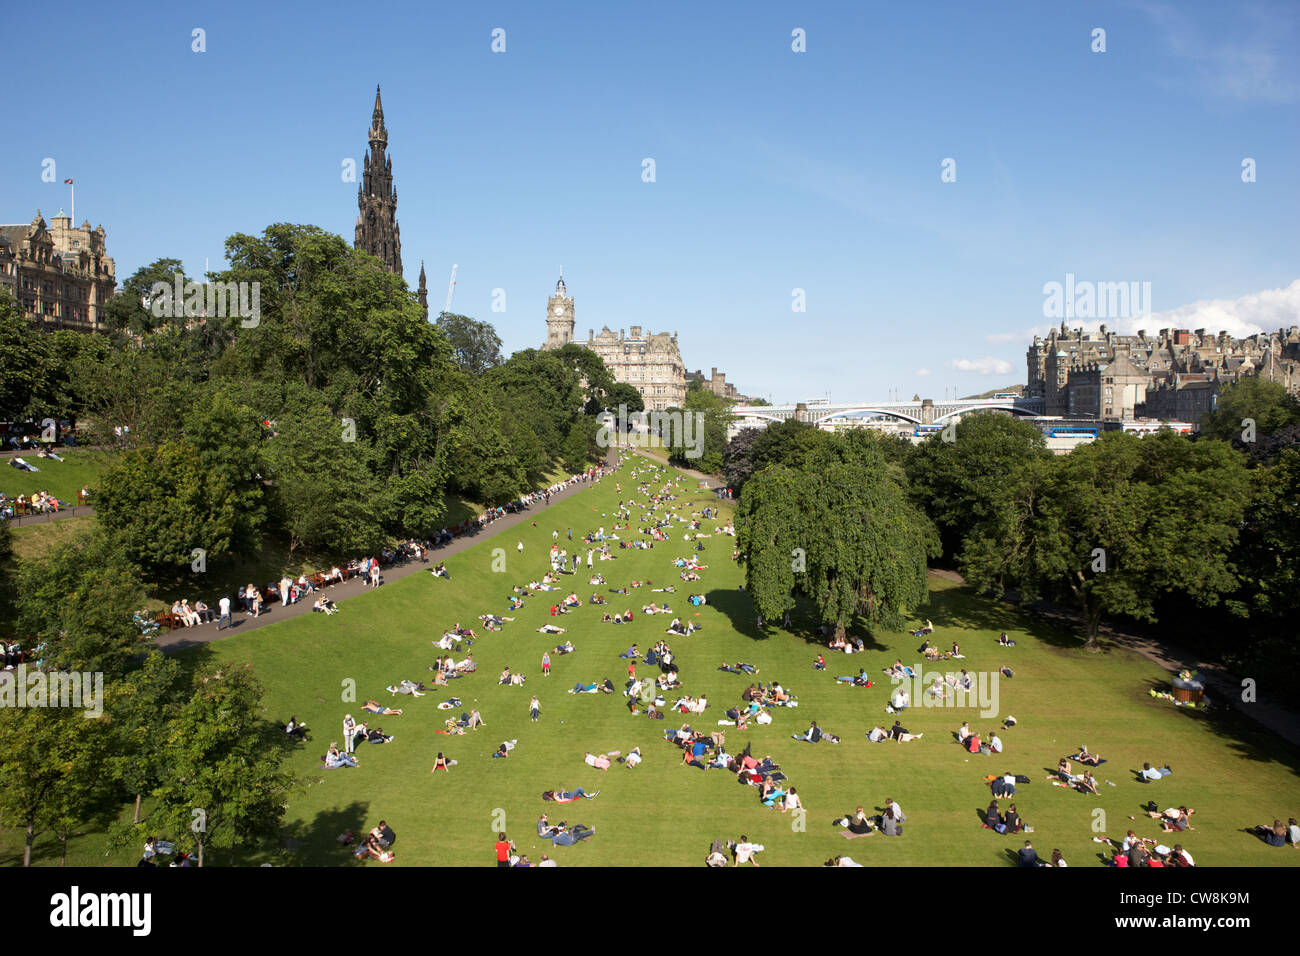 princes street gardens on a hot summers day in edinburgh scotland uk united kingdom - Stock Image